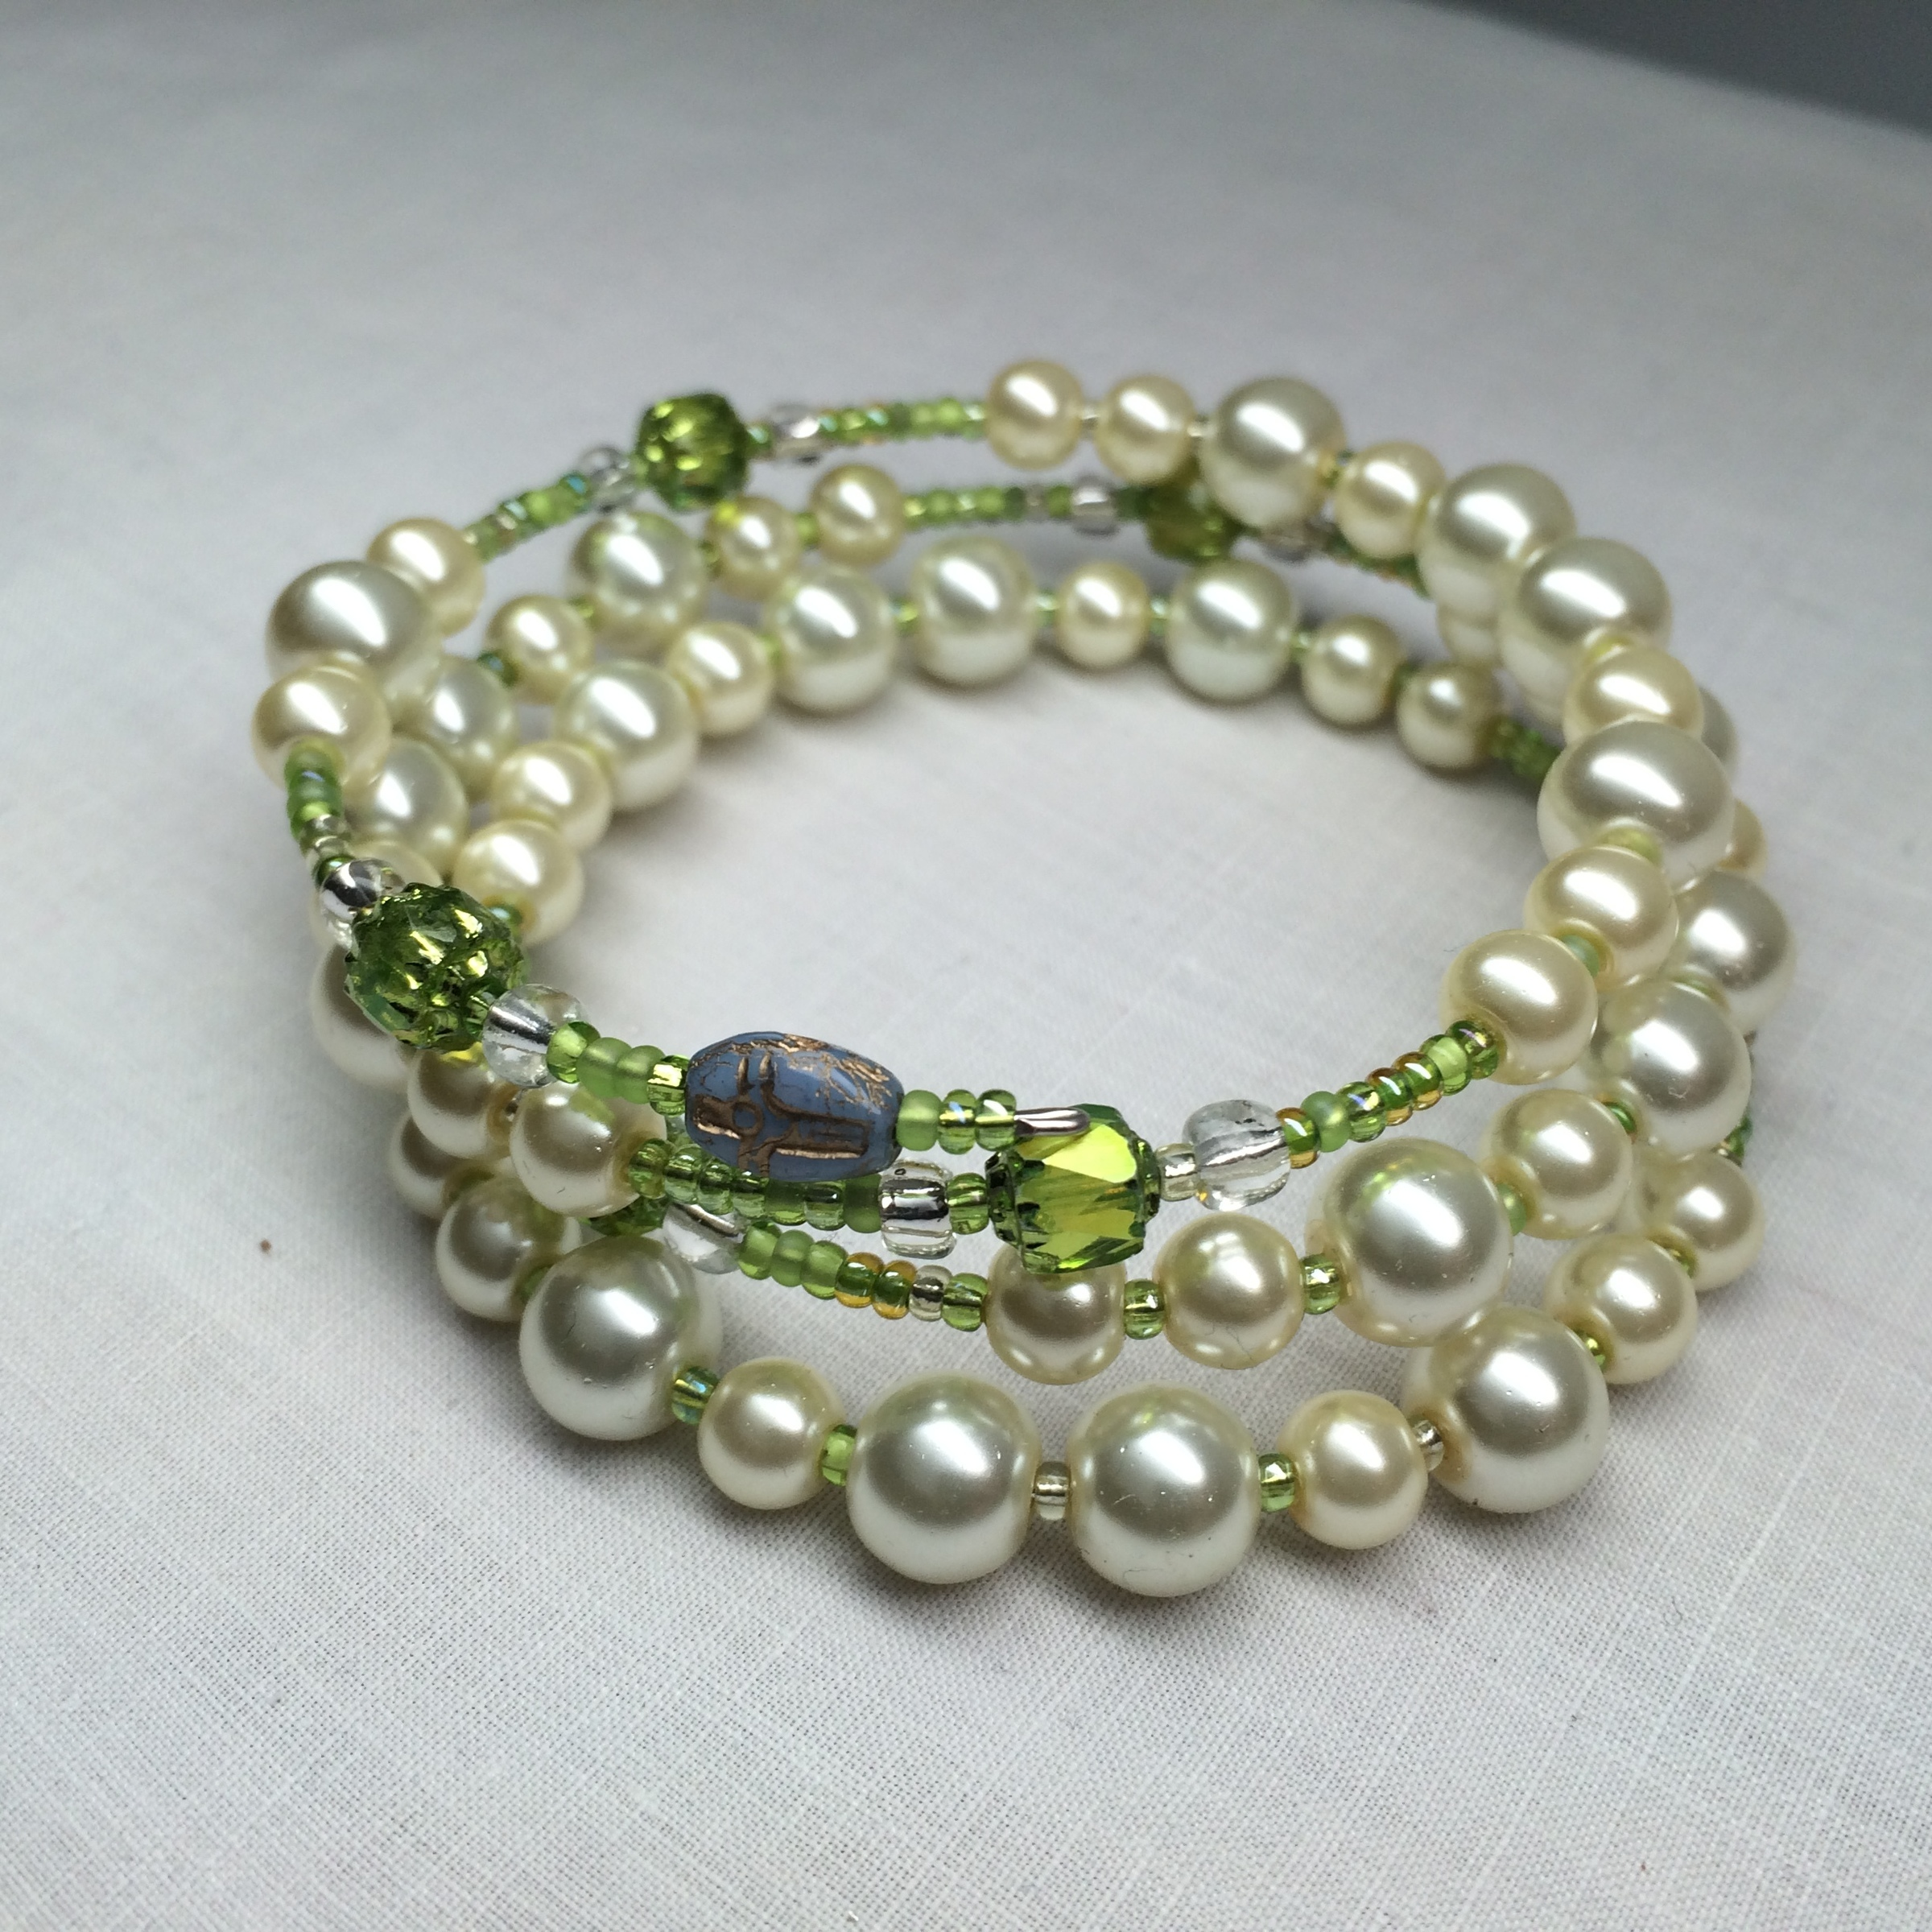 Wrap Around A Rosary Pearl With Bright Green Bracelet